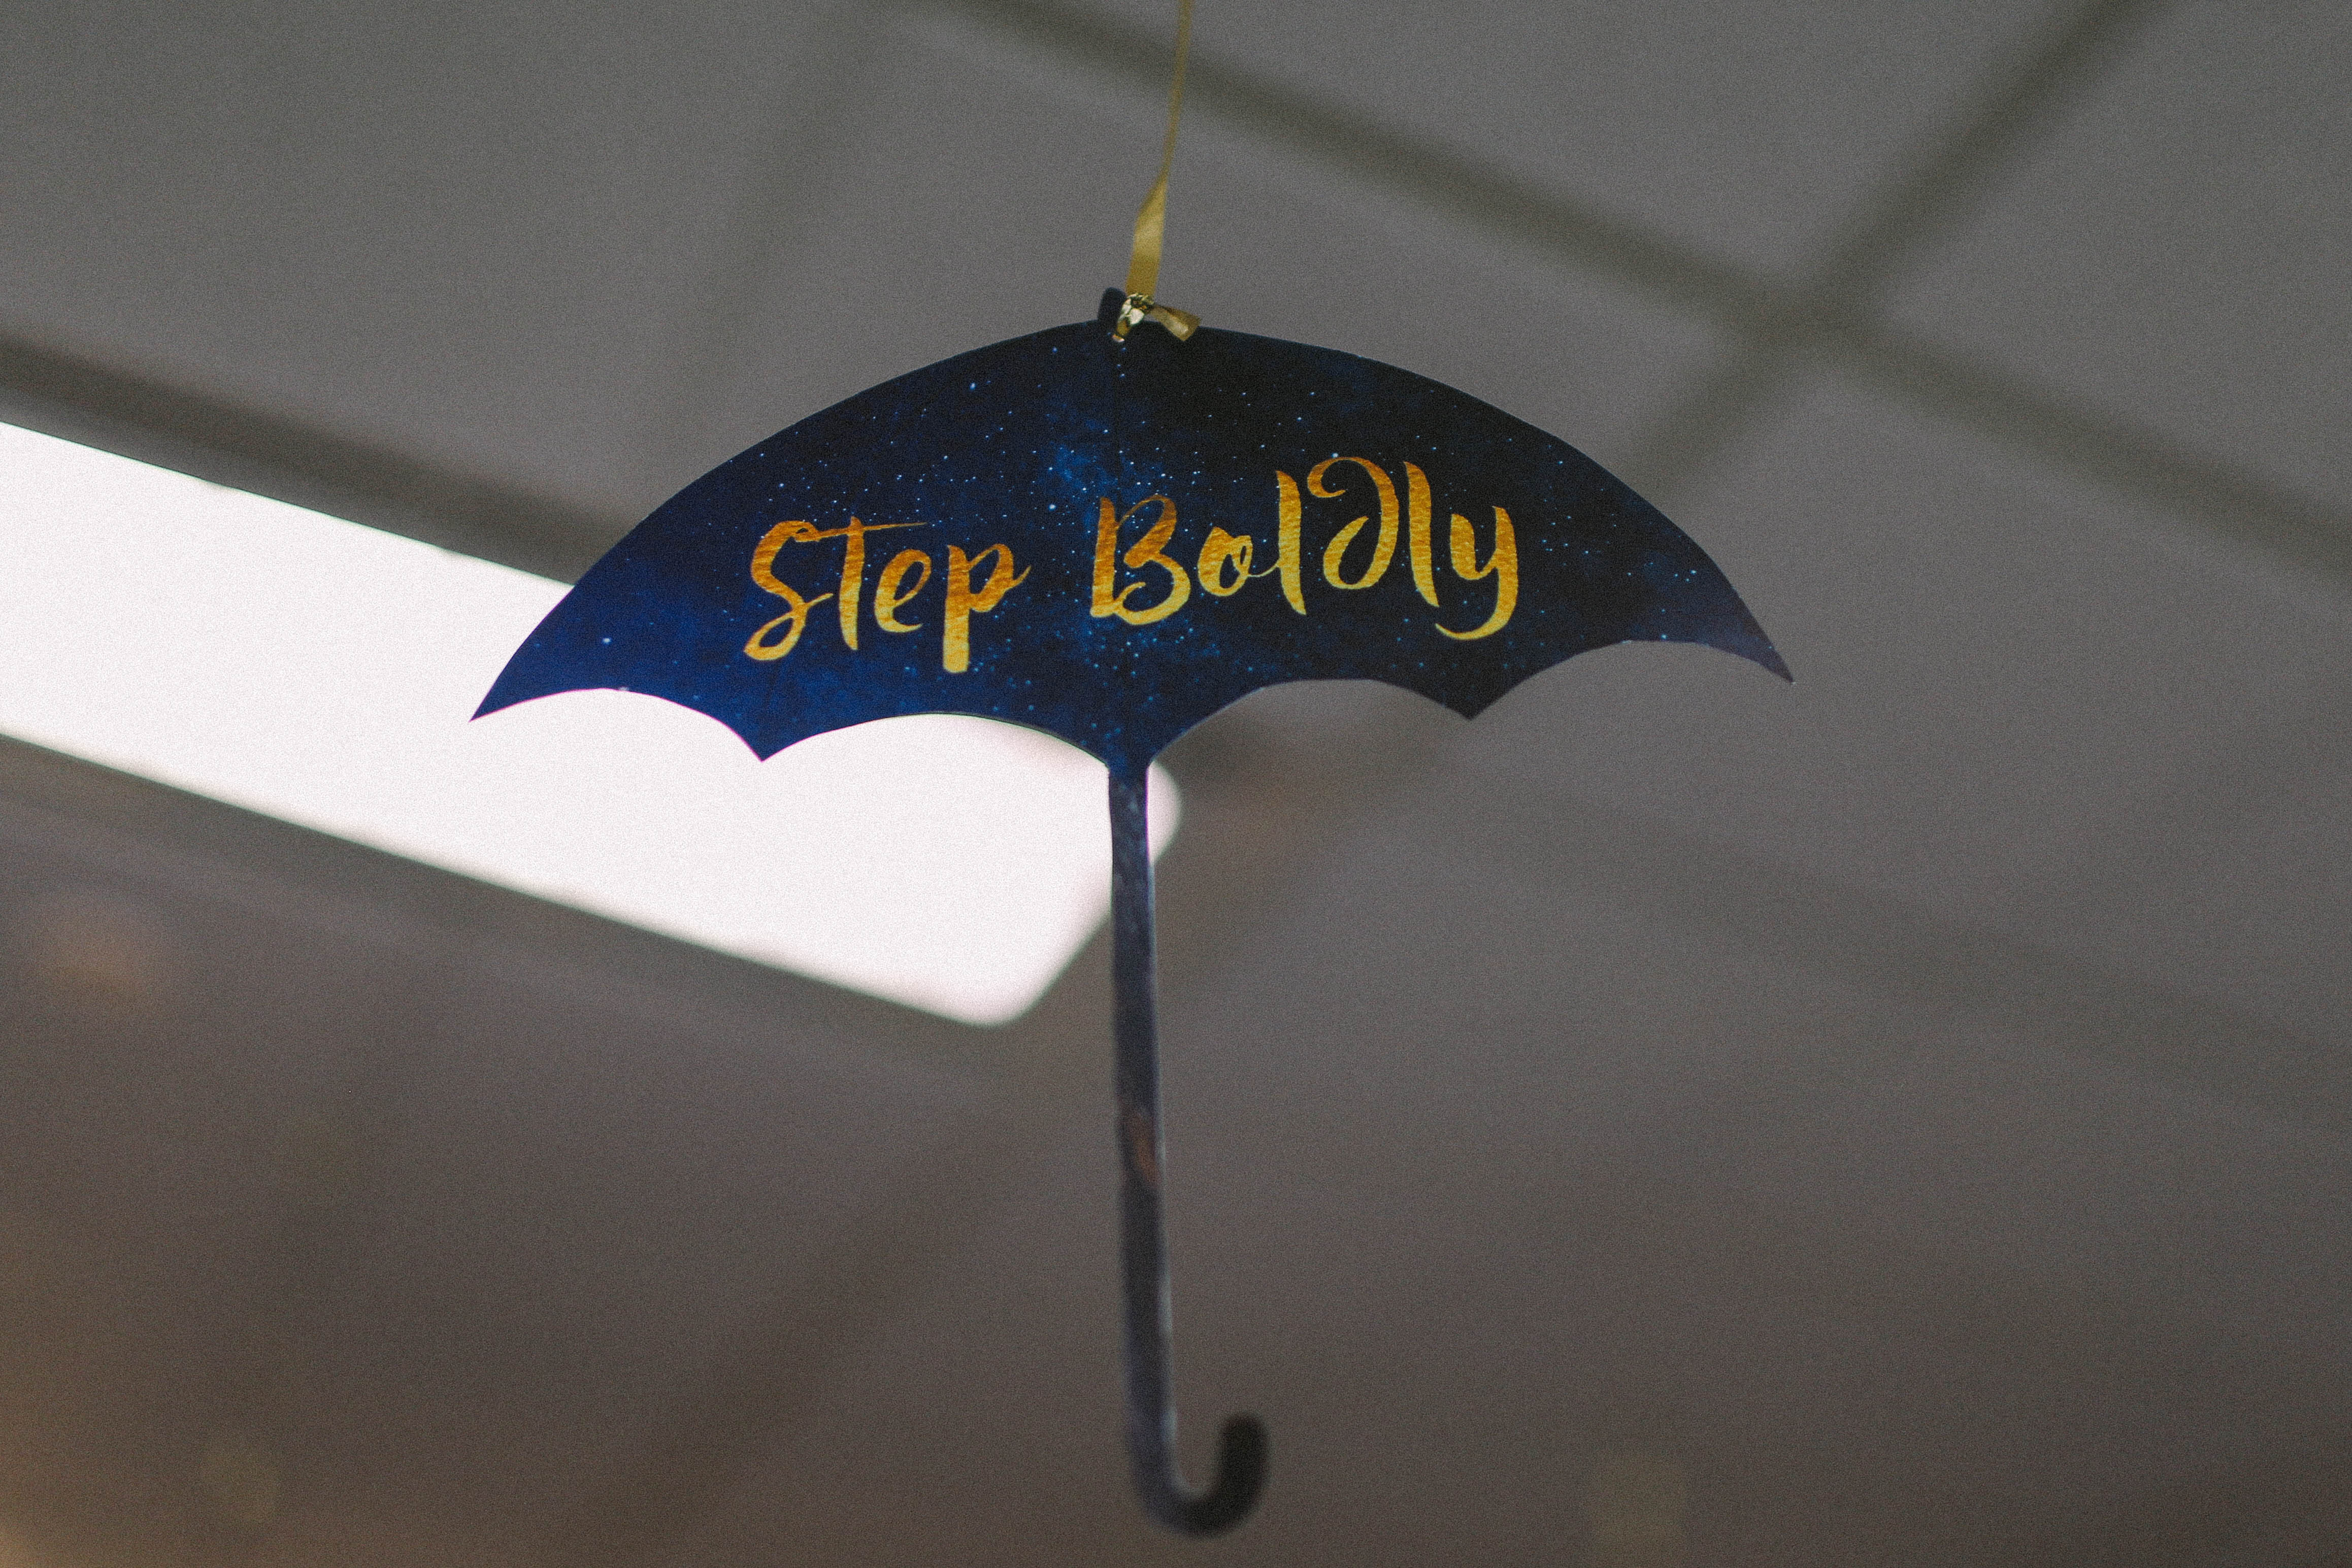 Step Boldly